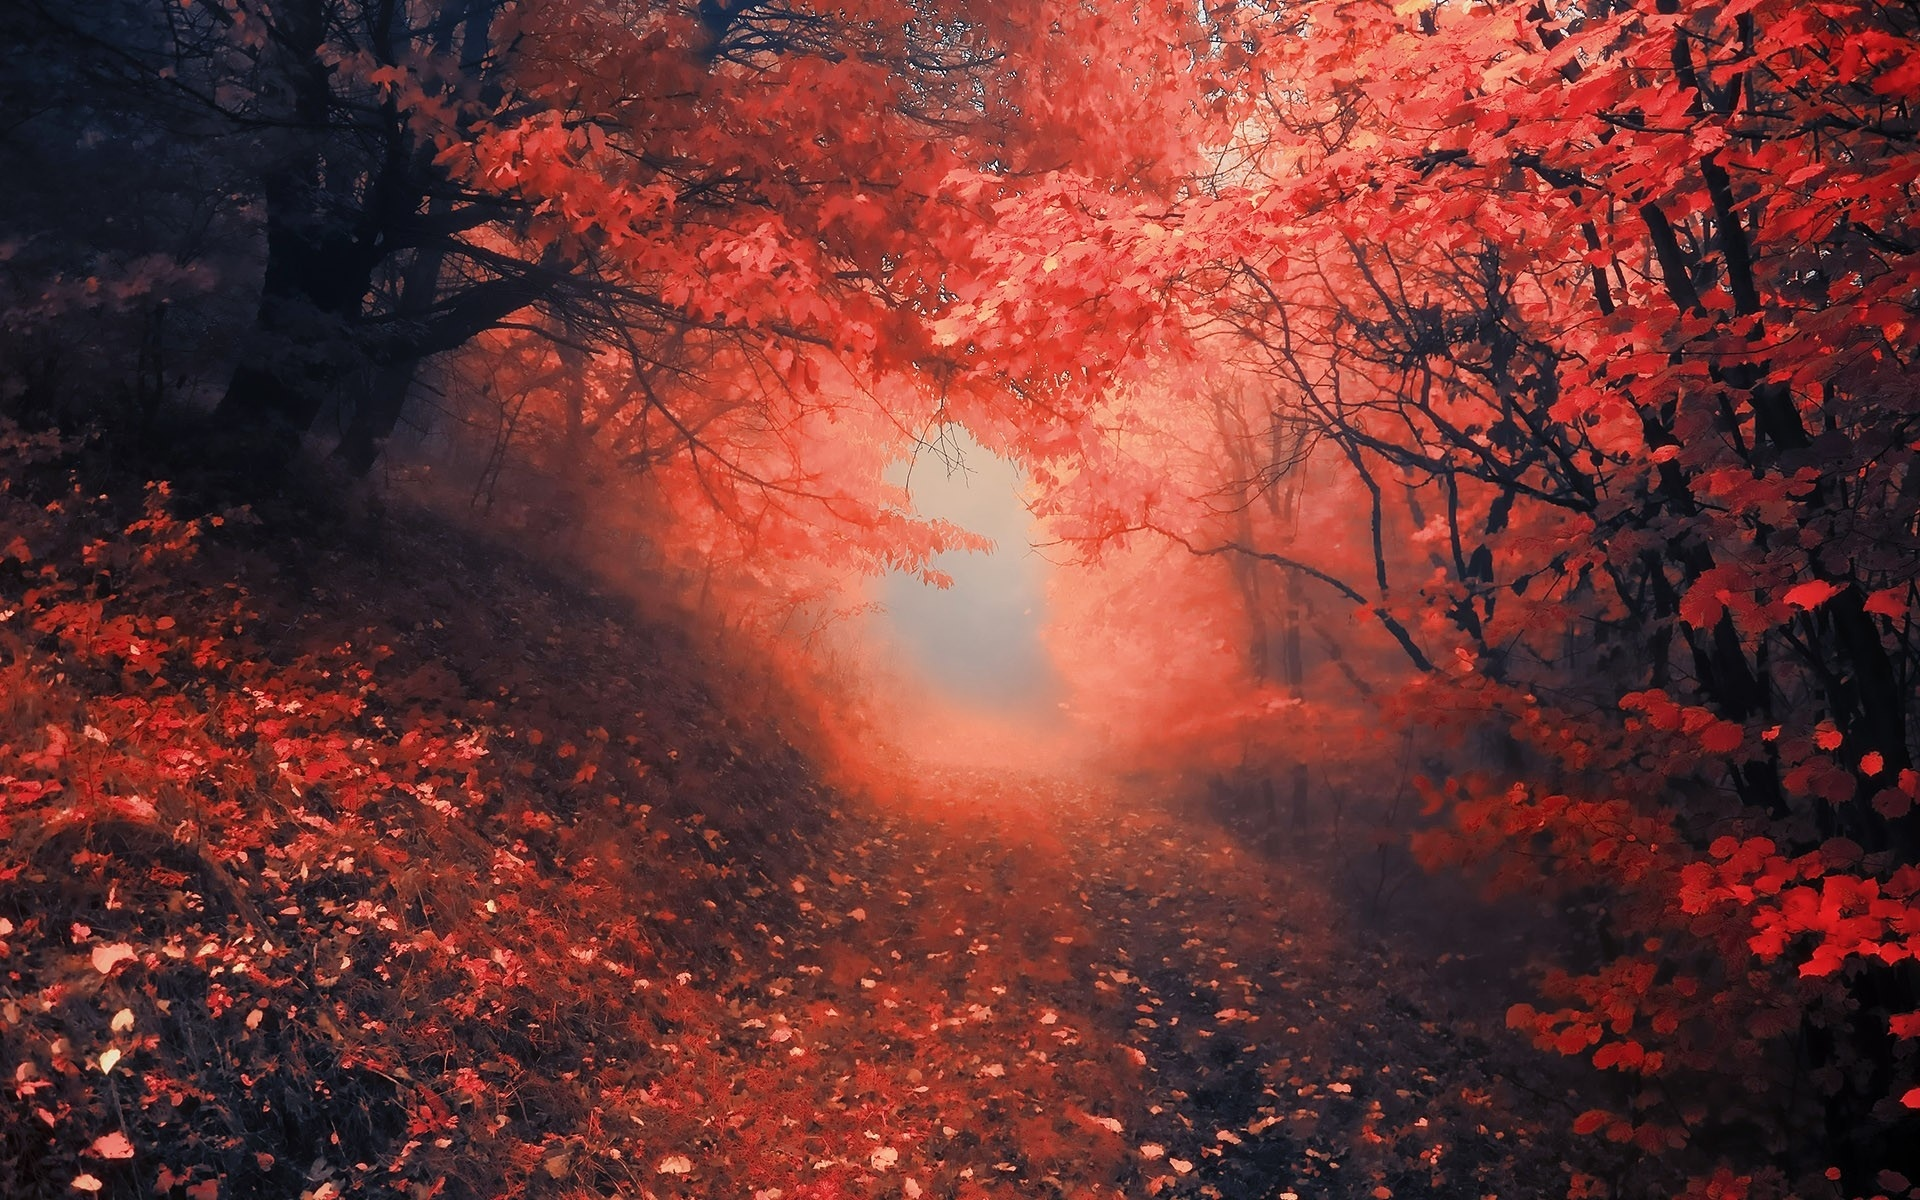 Dark Fall Iphone Wallpaper Nature Roads Landscapes Trees Forest Path Trail Leaves Red